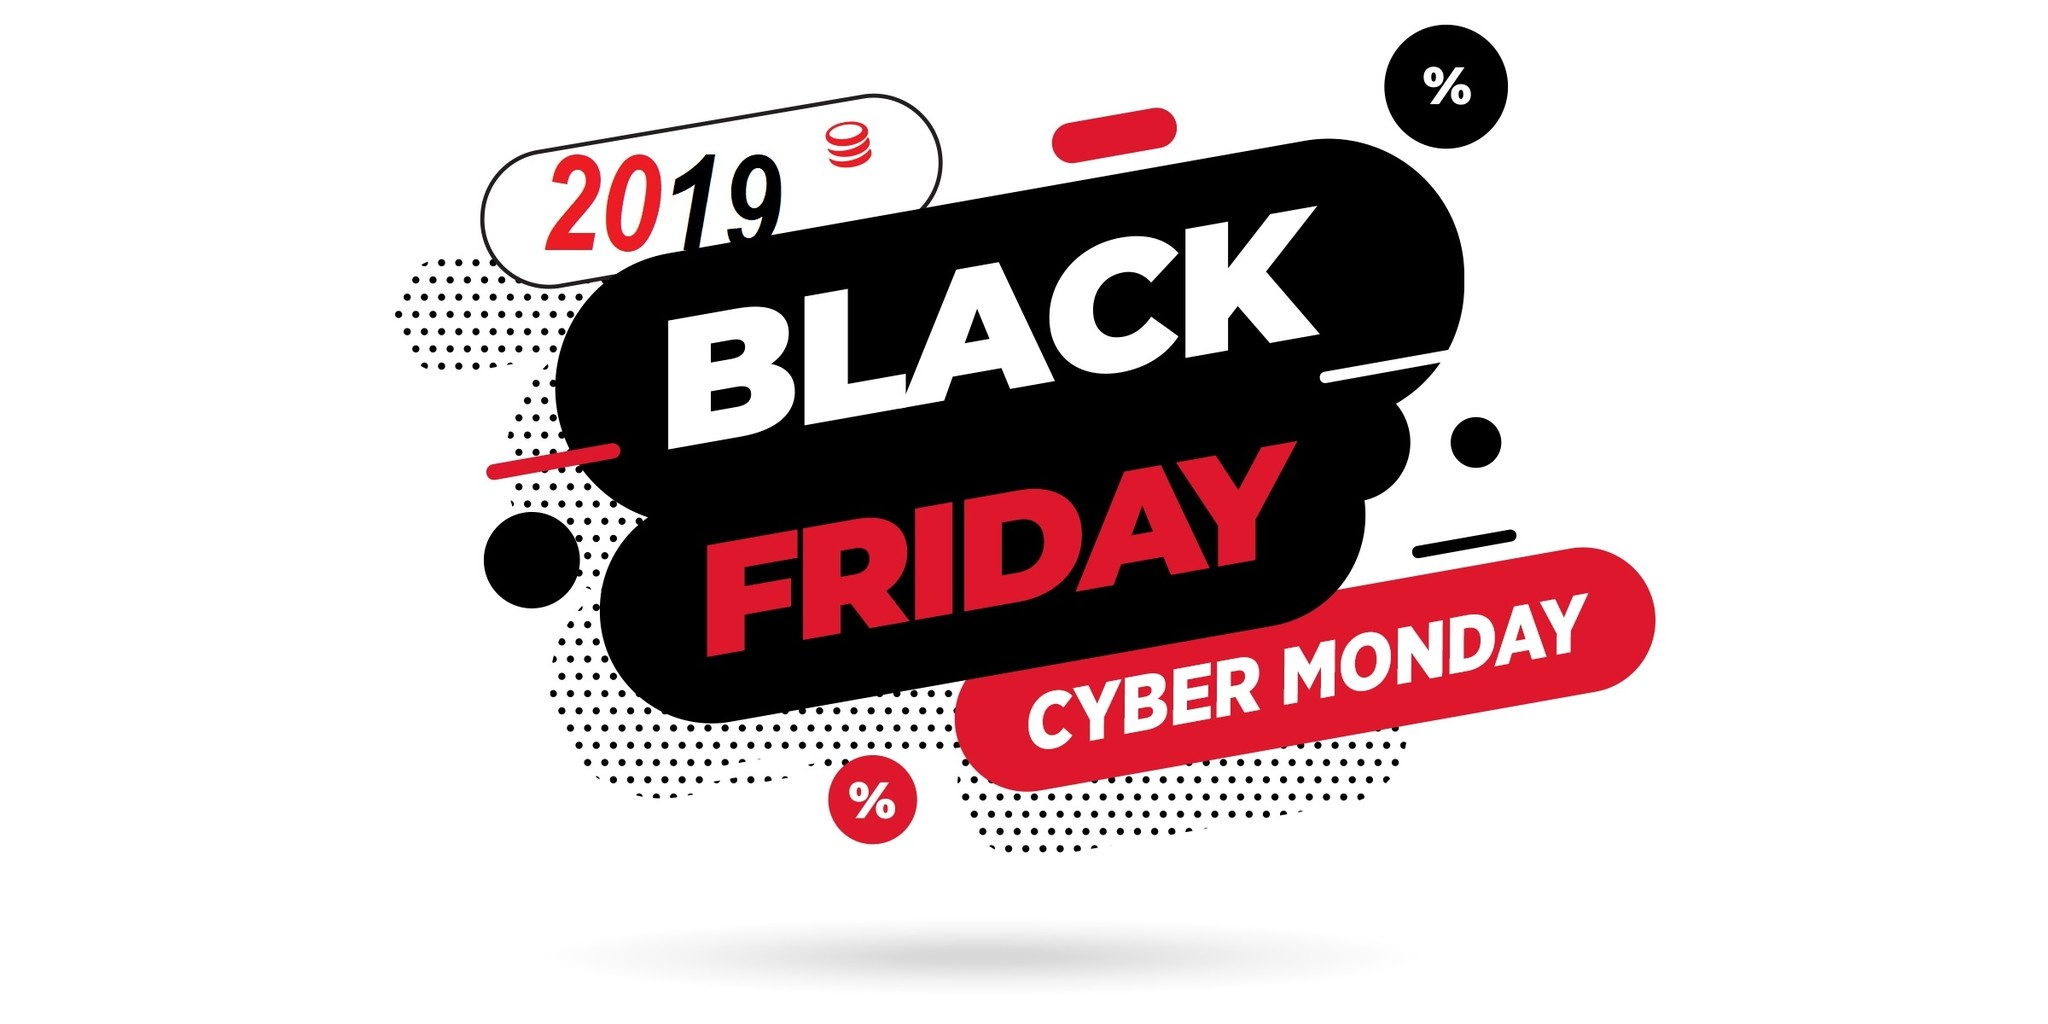 Black Friday en Cyber Monday bij Pepper Jobs!